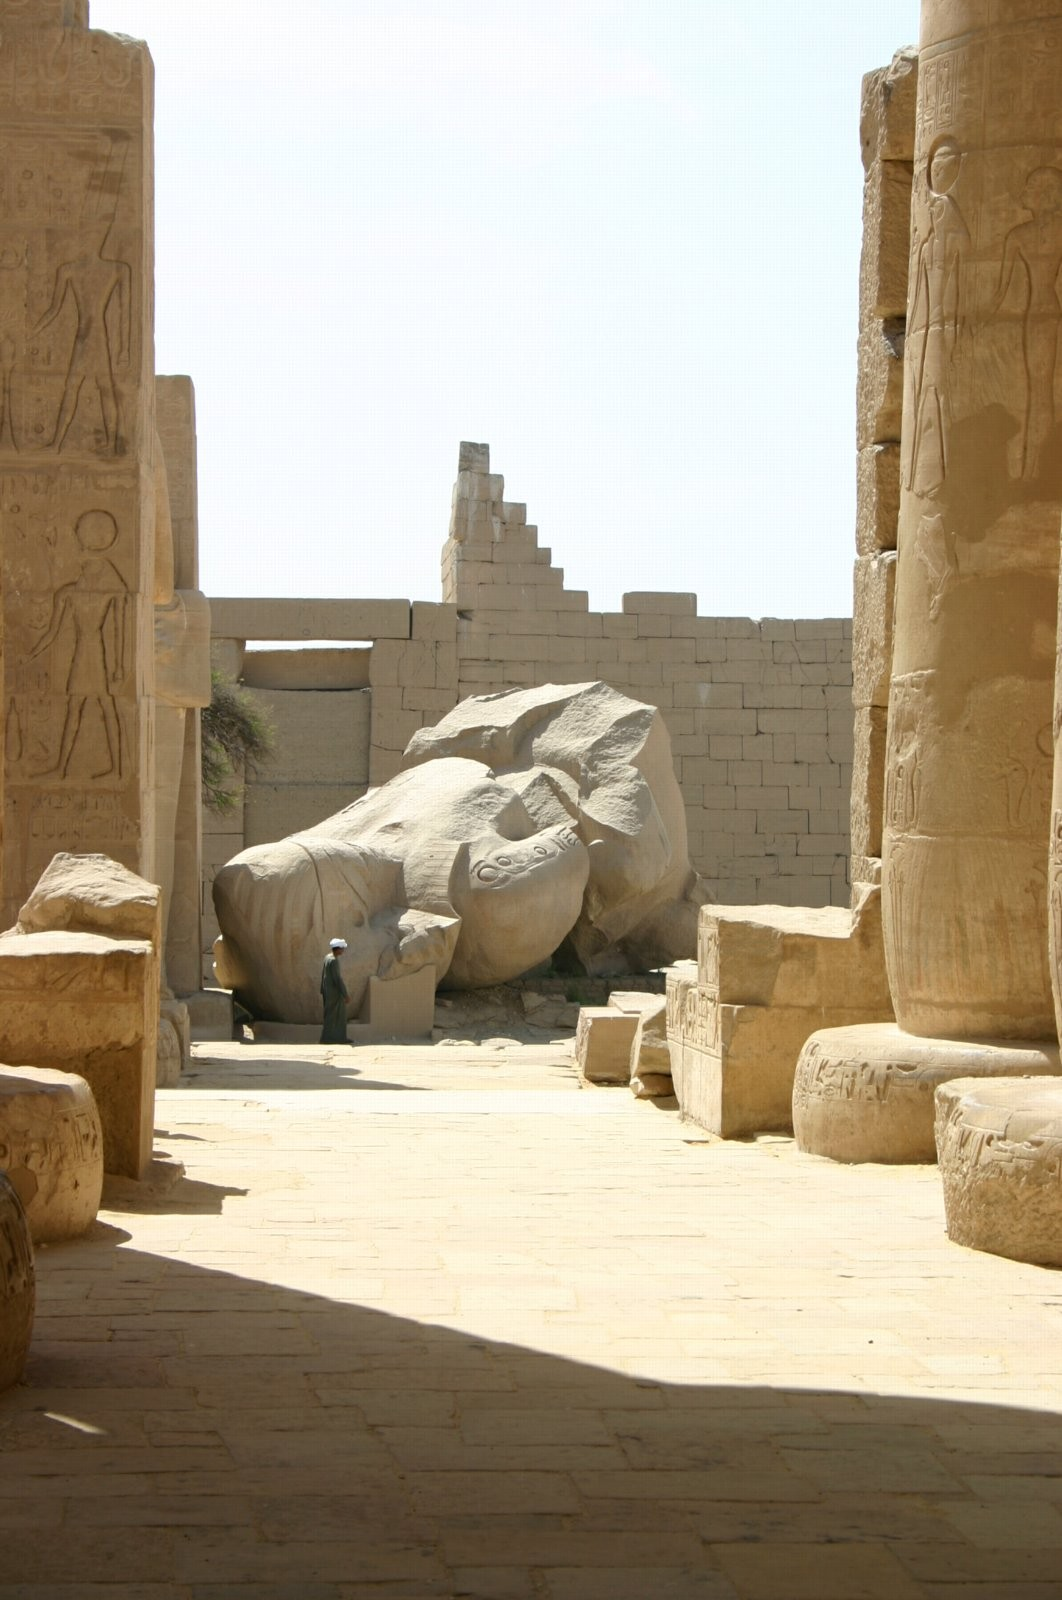 shelley critical appreciation writework temple of a million years of rameses ii luxor ozymandias statue